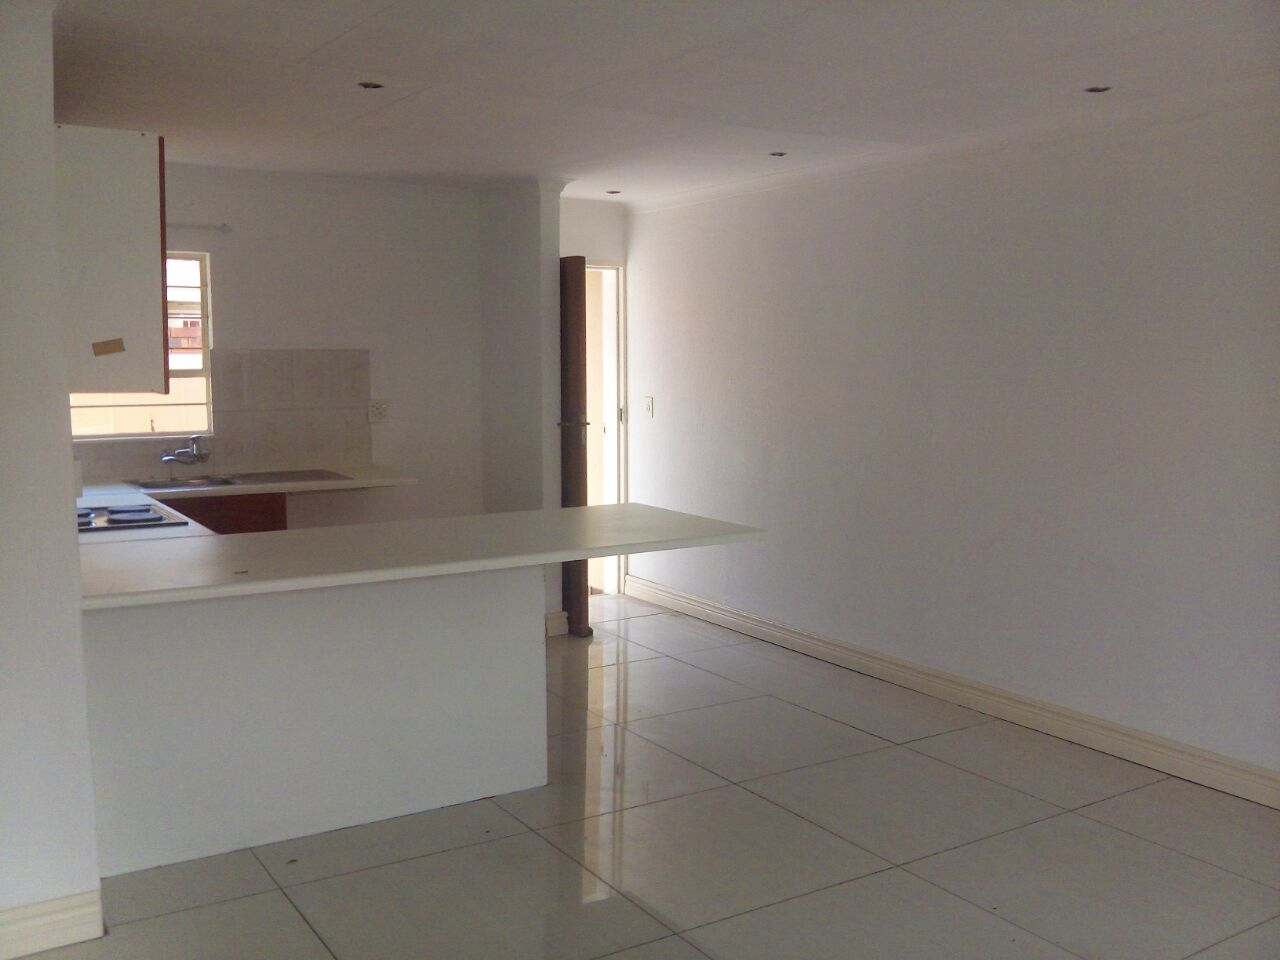 2 Bedroom Townhouse for sale in Sunninghill ENT0074719 : photo#6